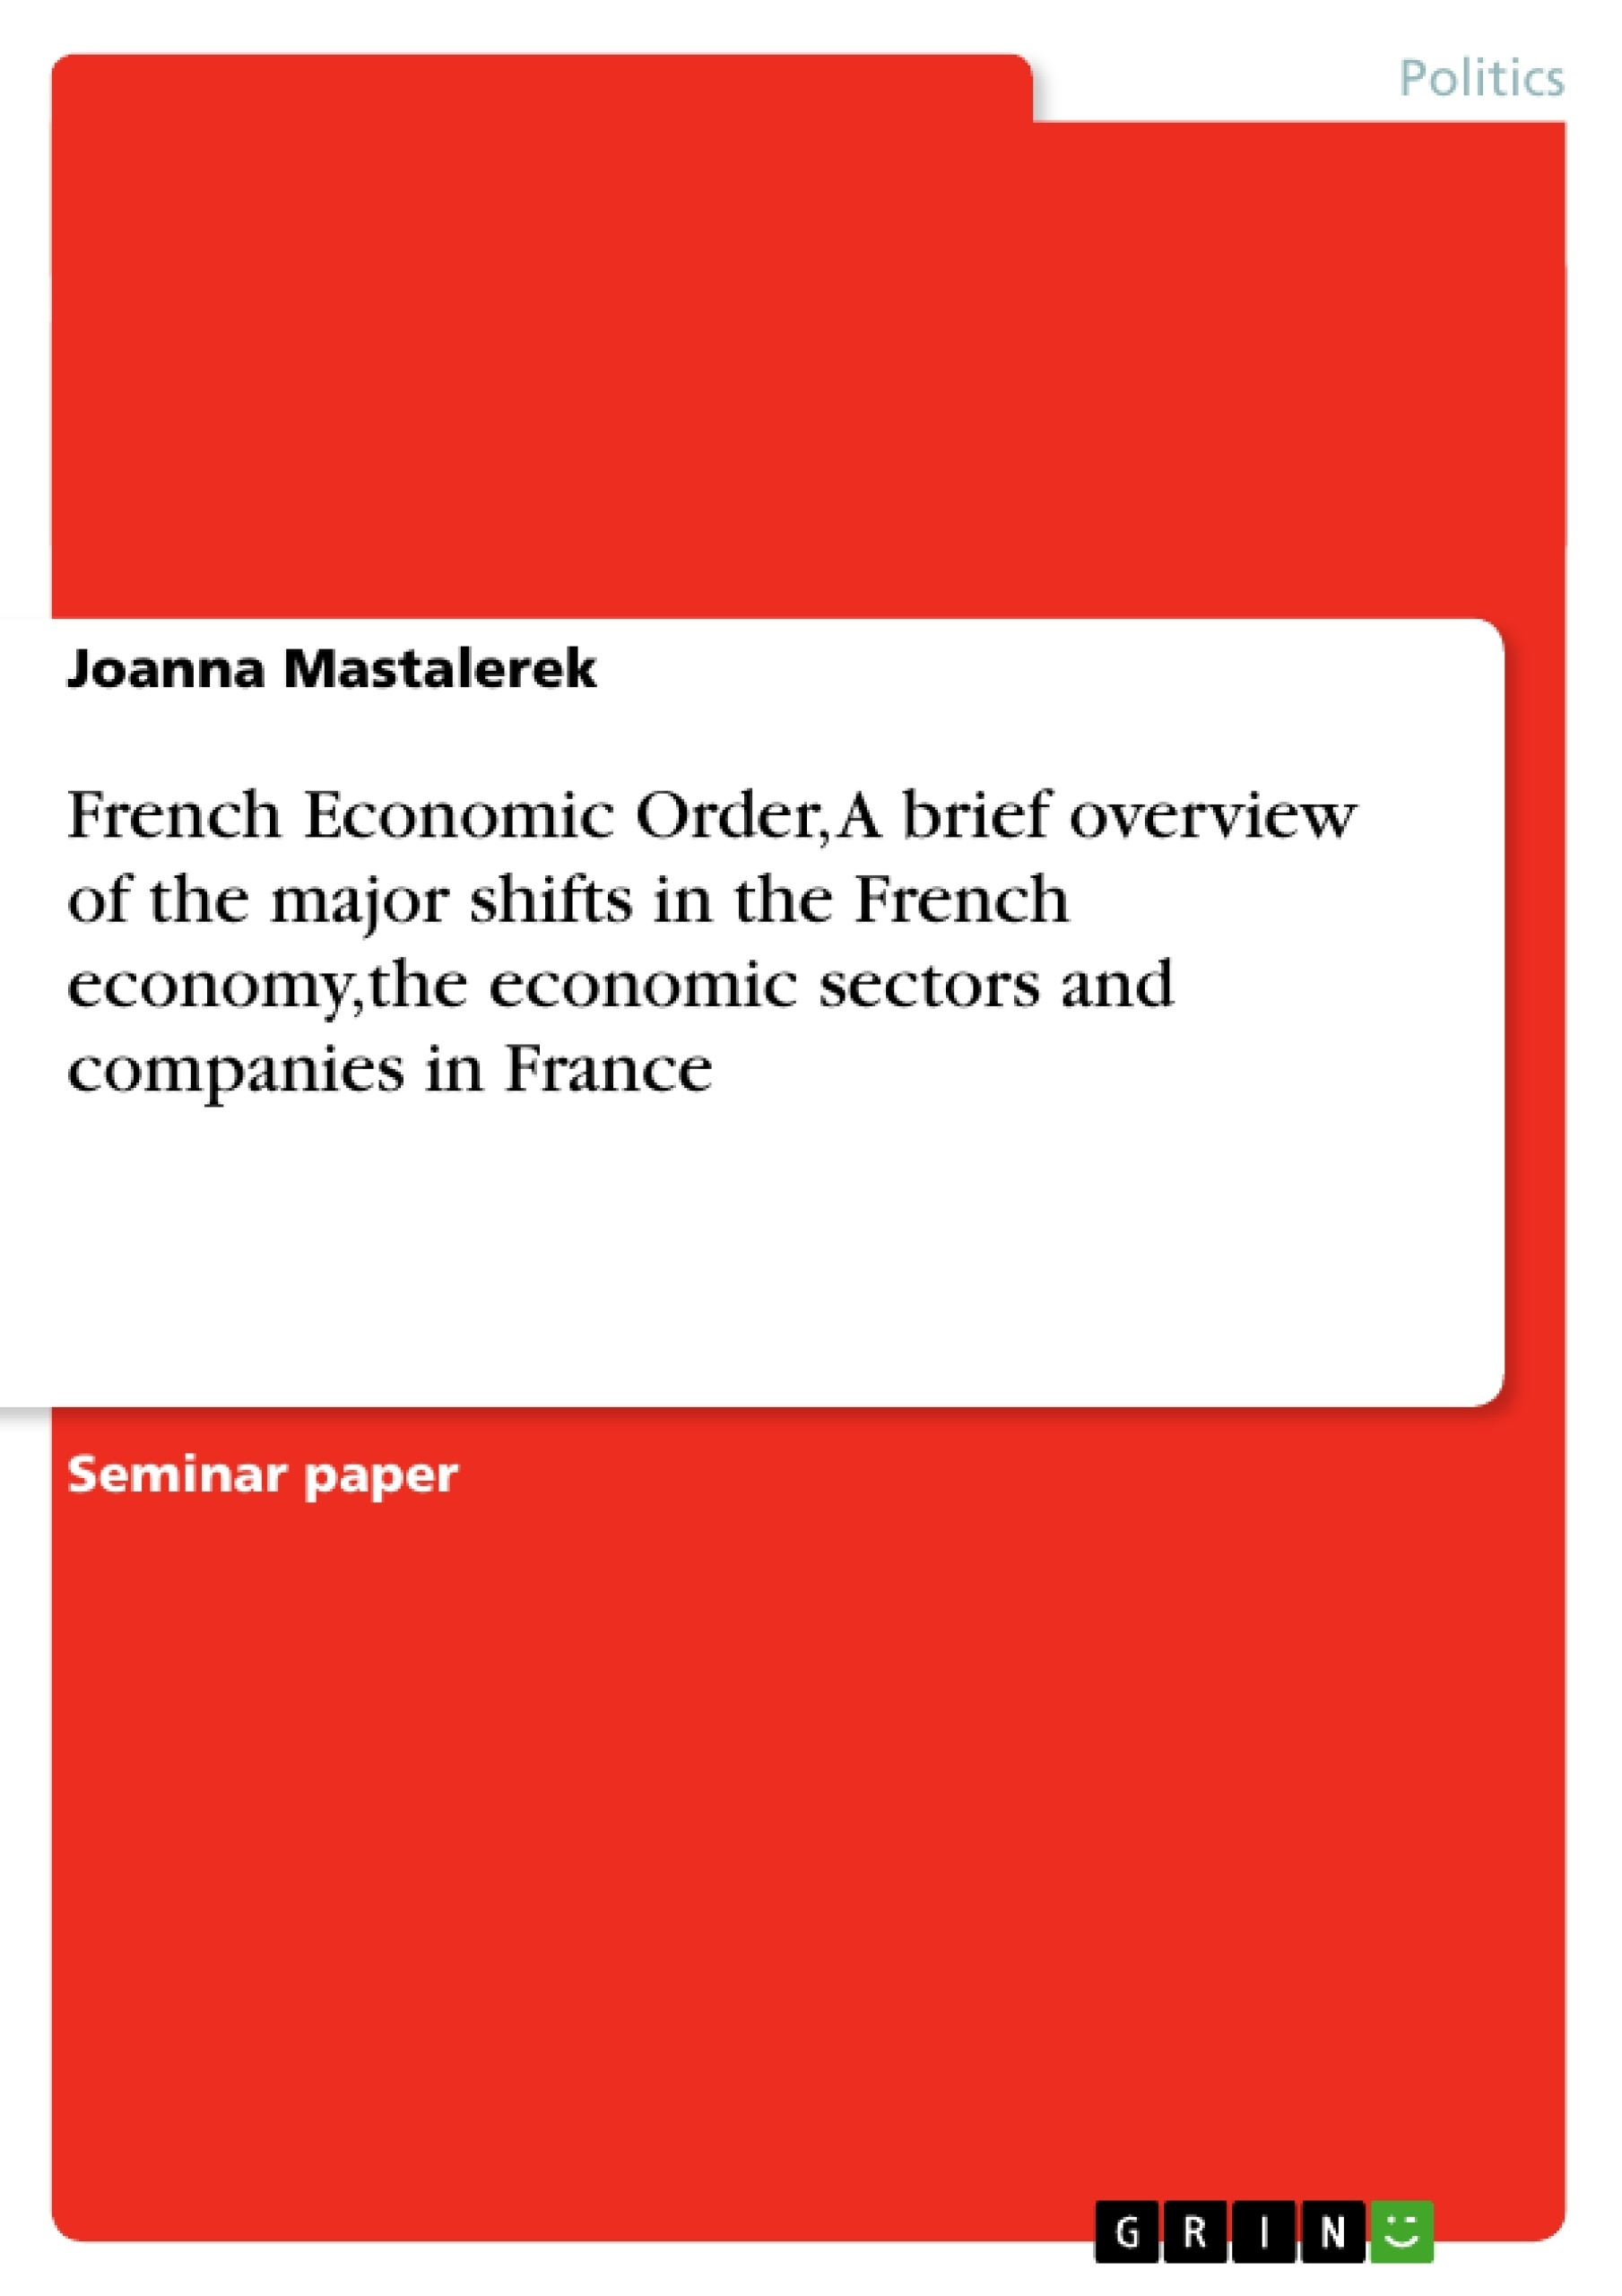 Title: French Economic Order, A brief overview of the major shifts in the French economy,the economic sectors and companies in France